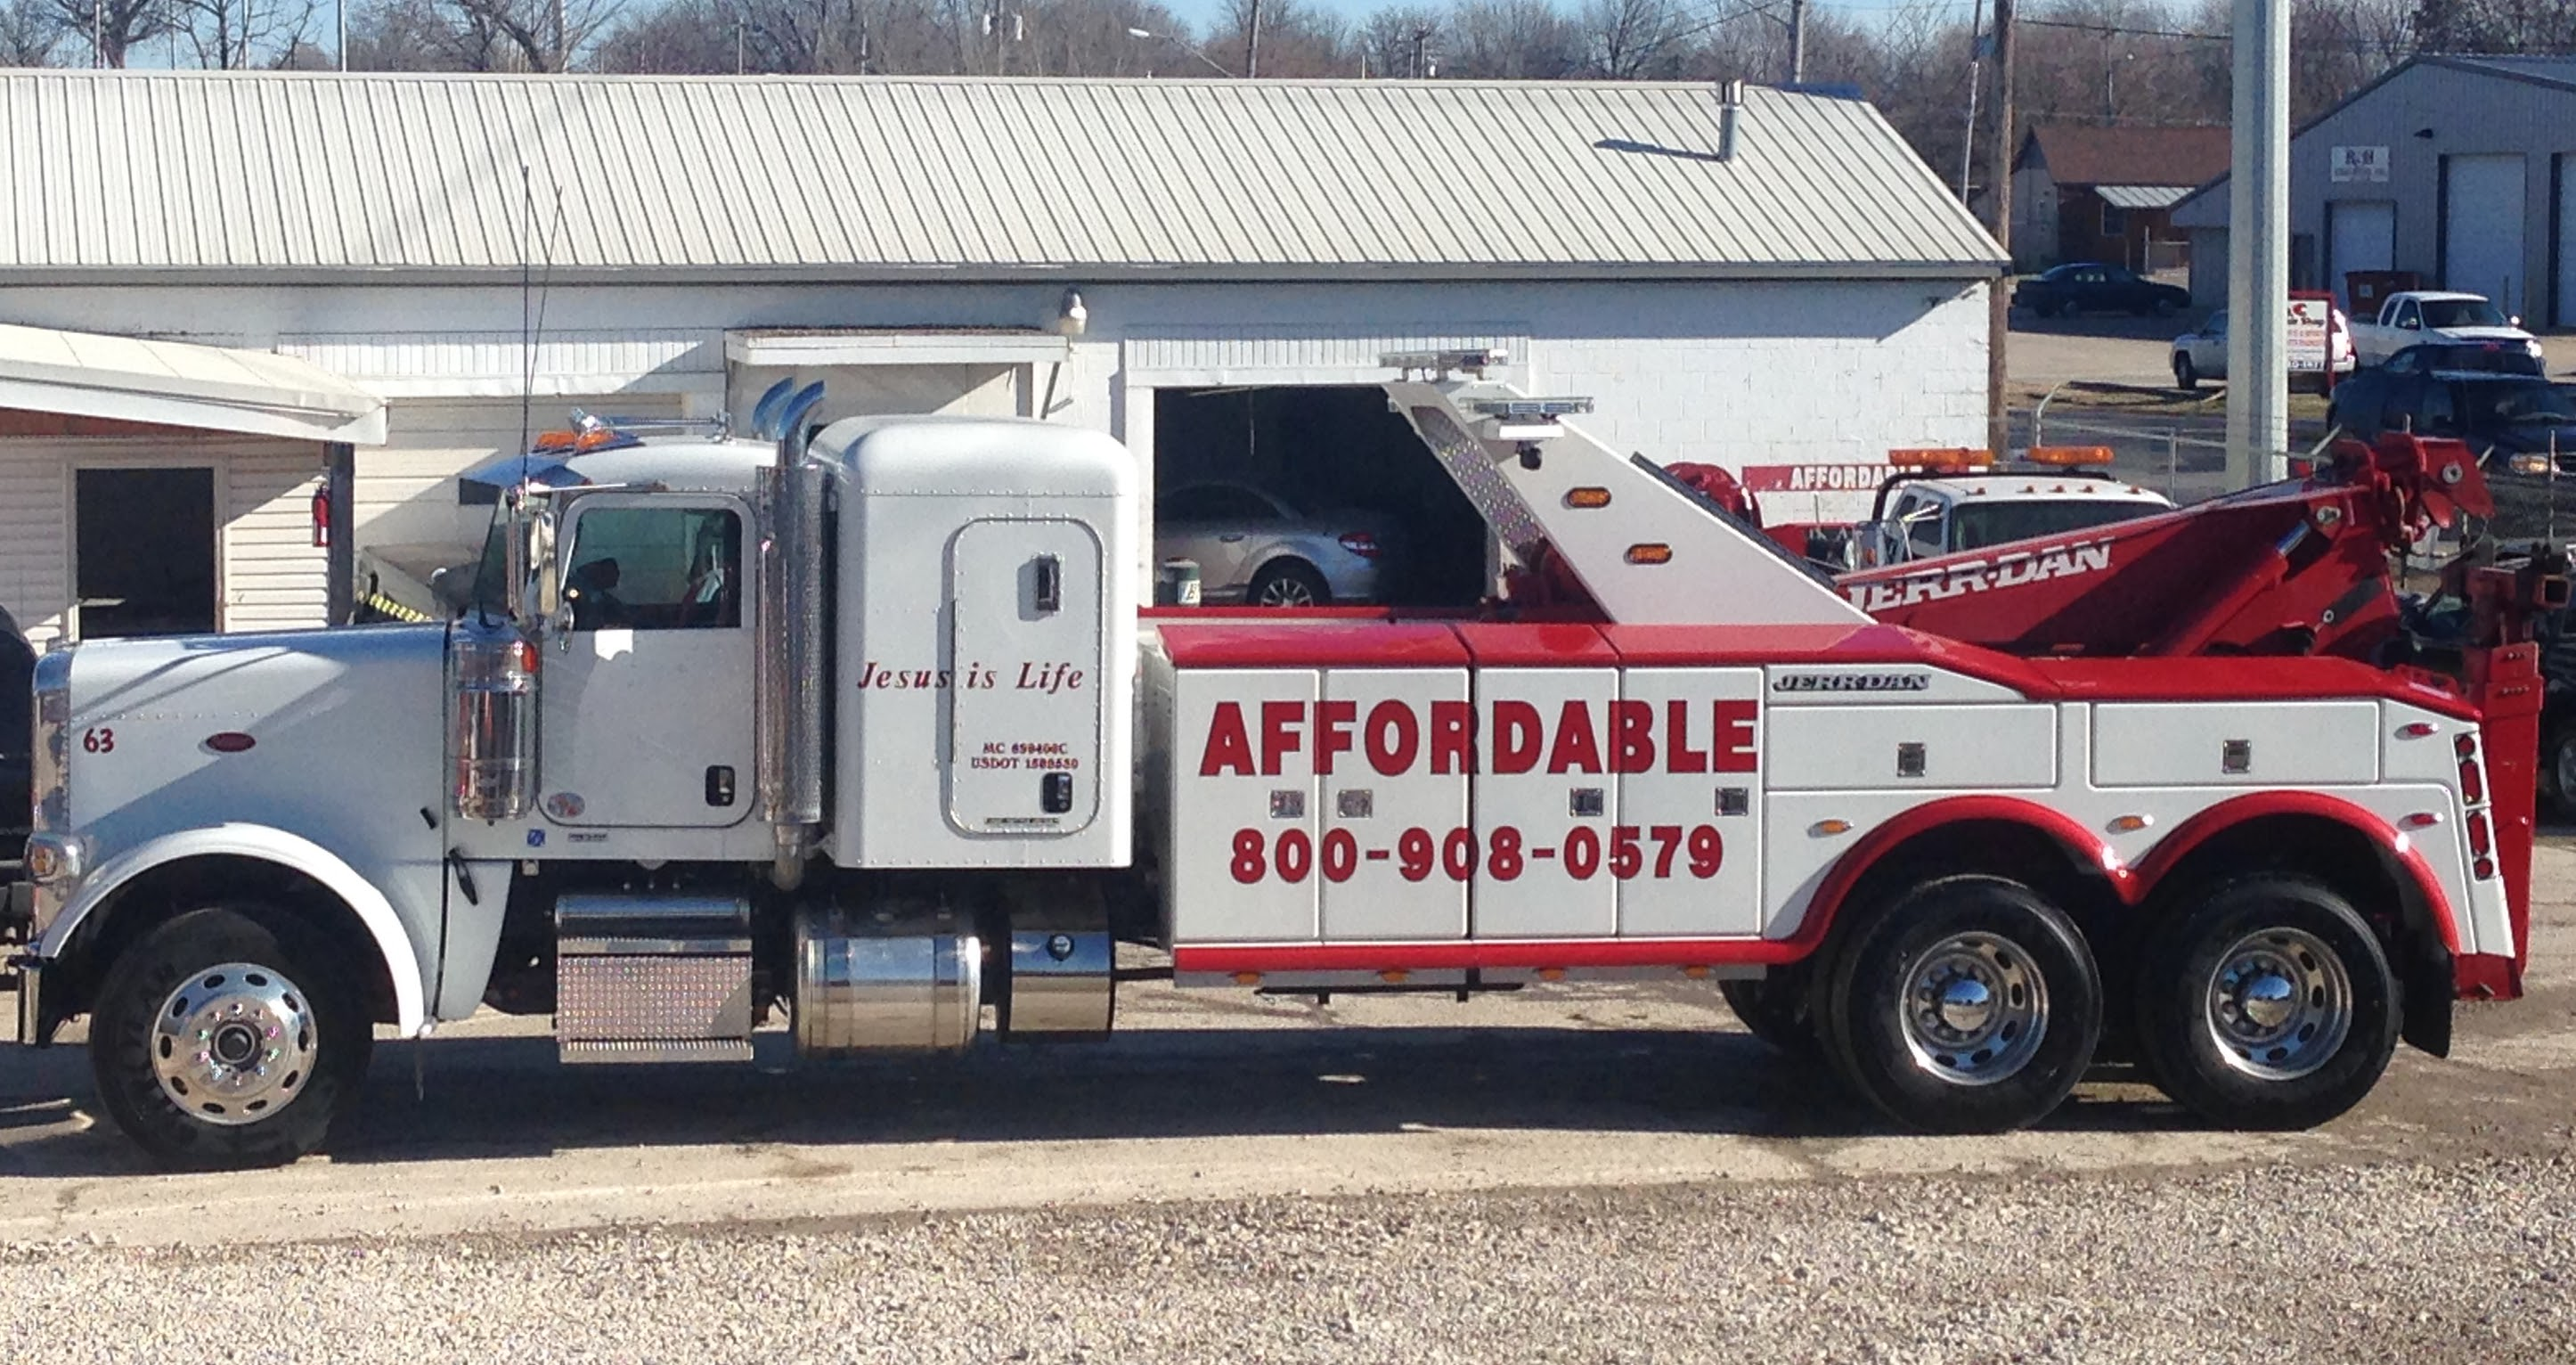 Affordable Towing image 5